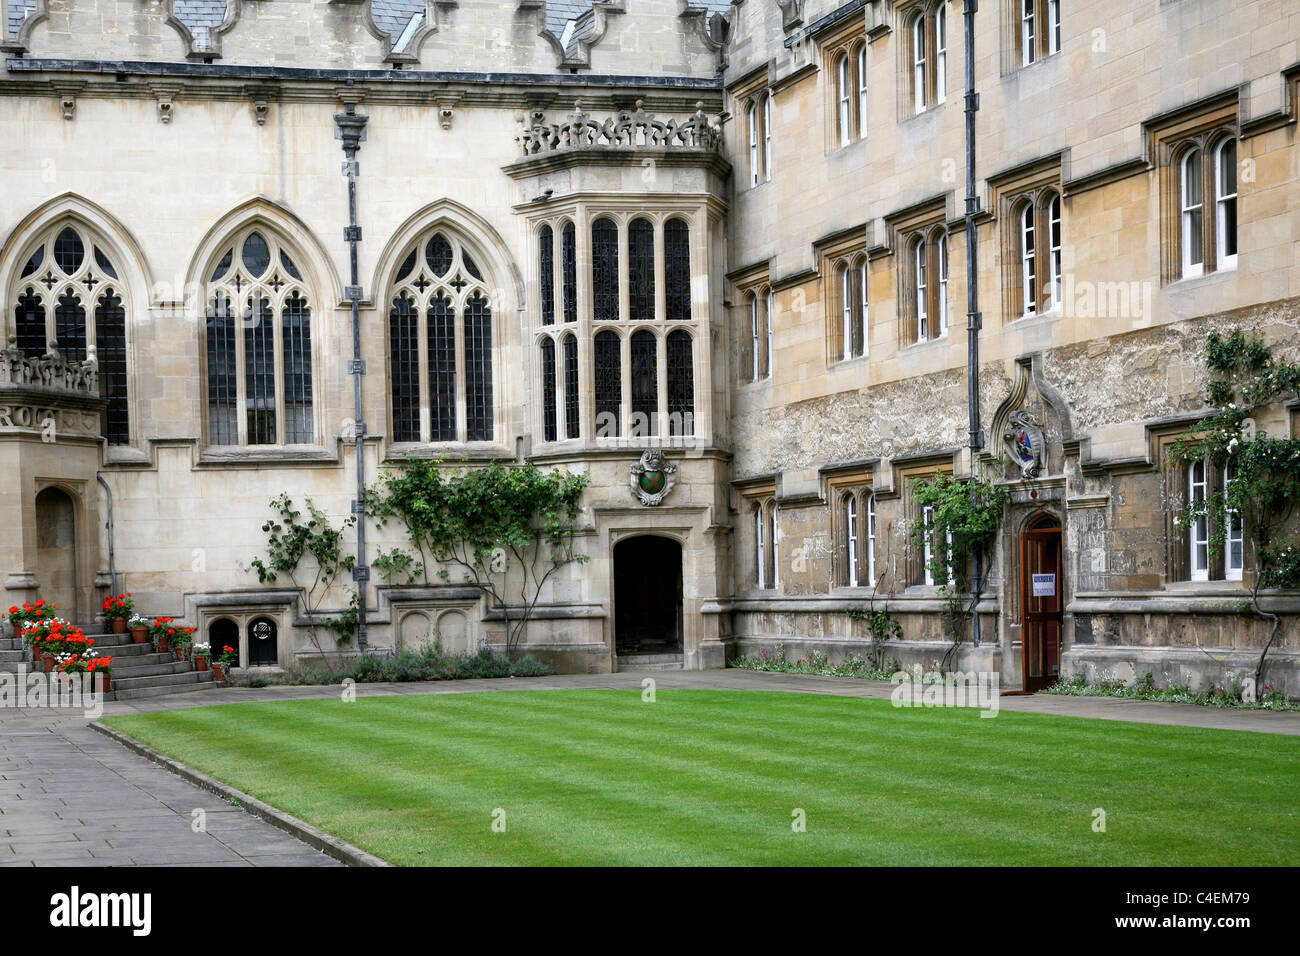 Oxford University Oriel College First Quad - Stock Image